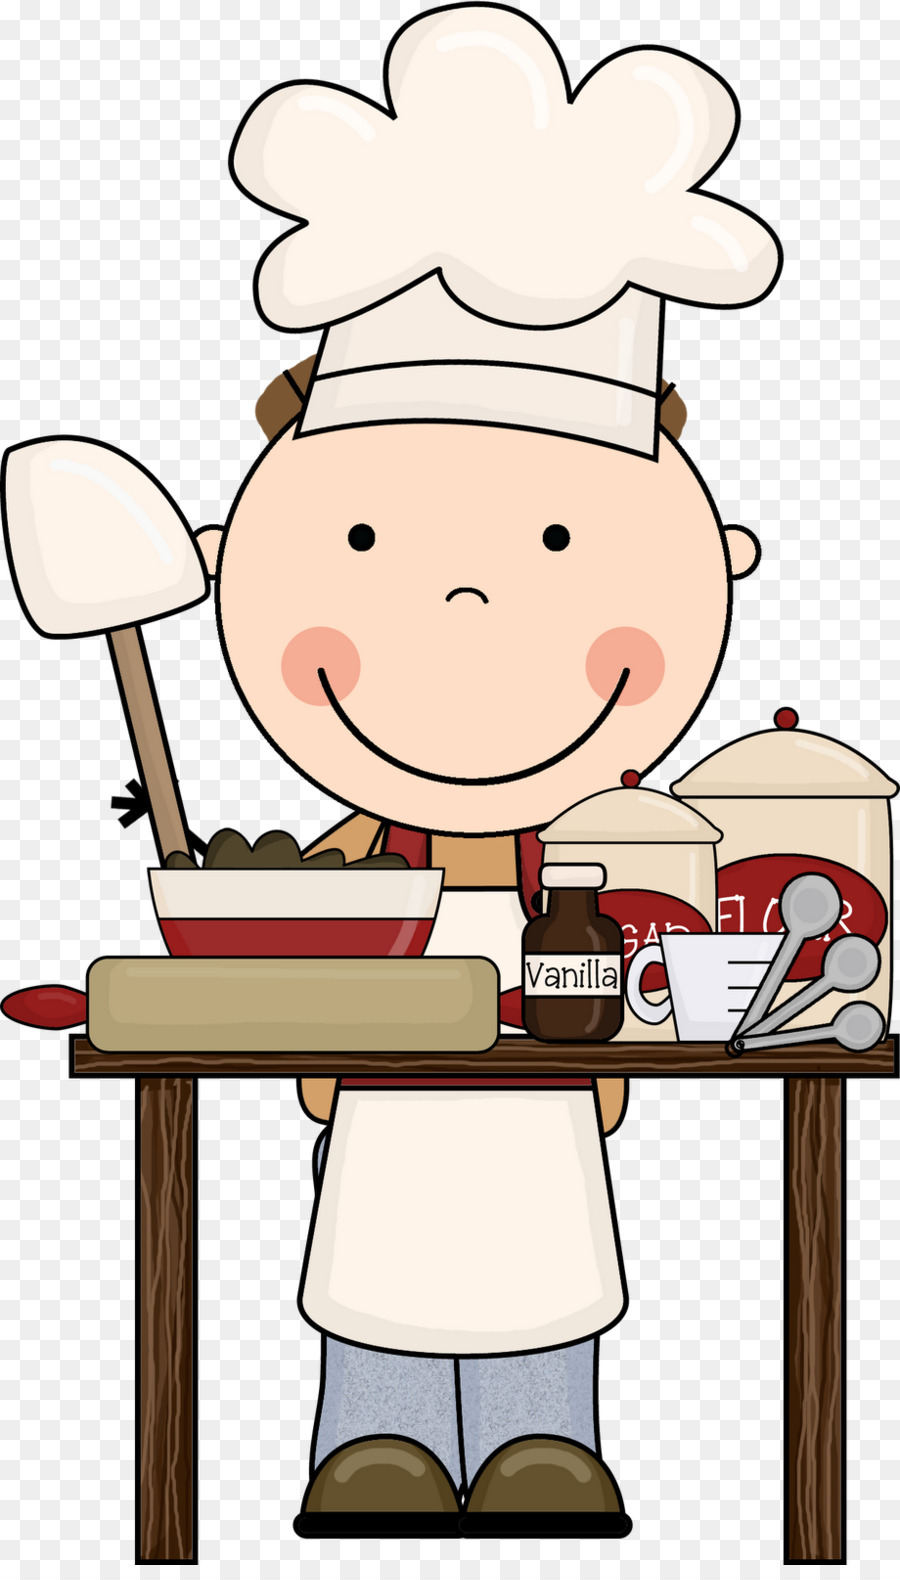 Cooking clip art pictures. Baking clipart child